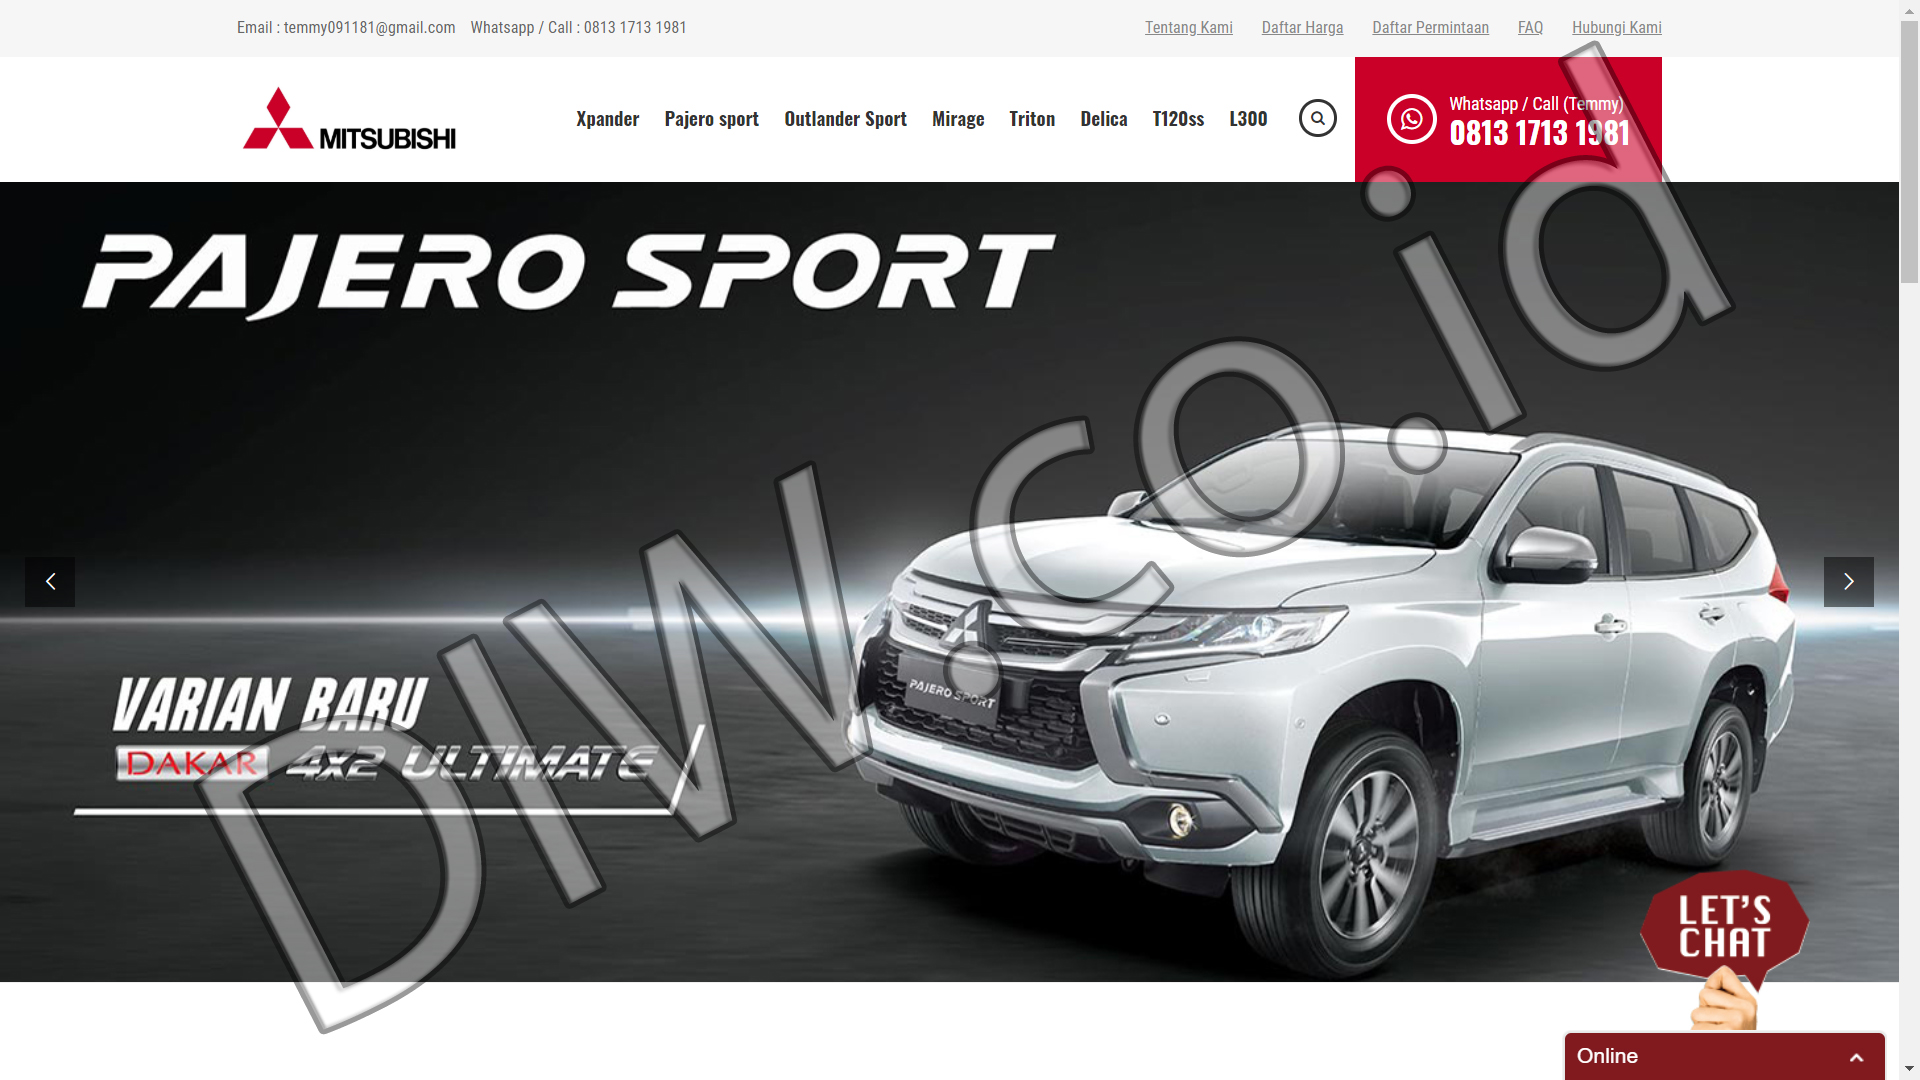 Portfolio 1 - Dealer Mitsubishi Jakarta Barat - Andri Sunardi - Freelancer - Web Developer - CEO DIW.co.id